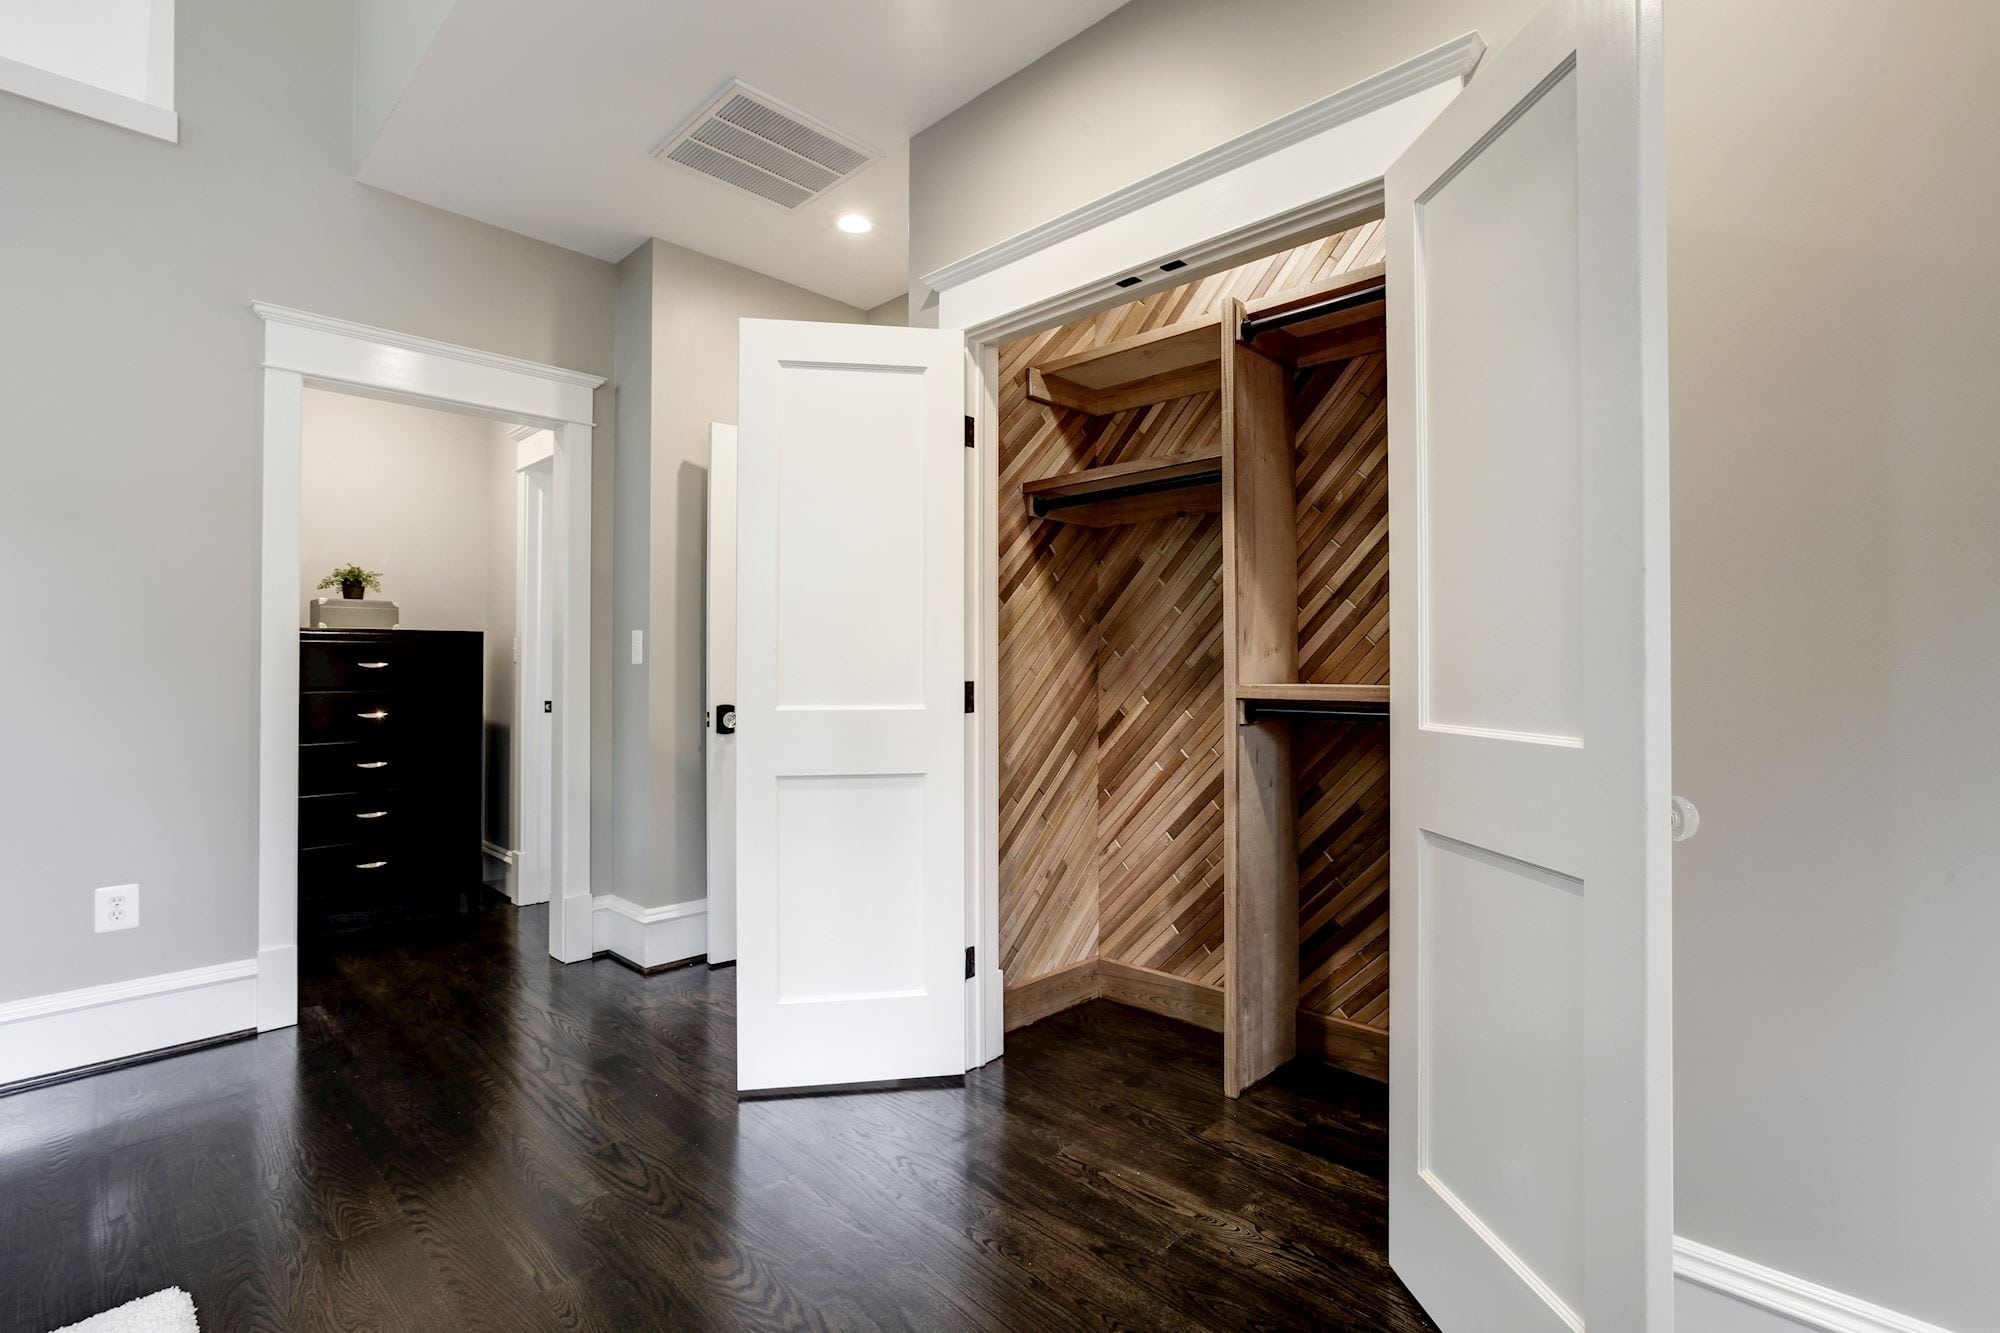 Cedar closet. One of 2 master closets. Custom Home by Custom Builder, North Arlington, VA 22207